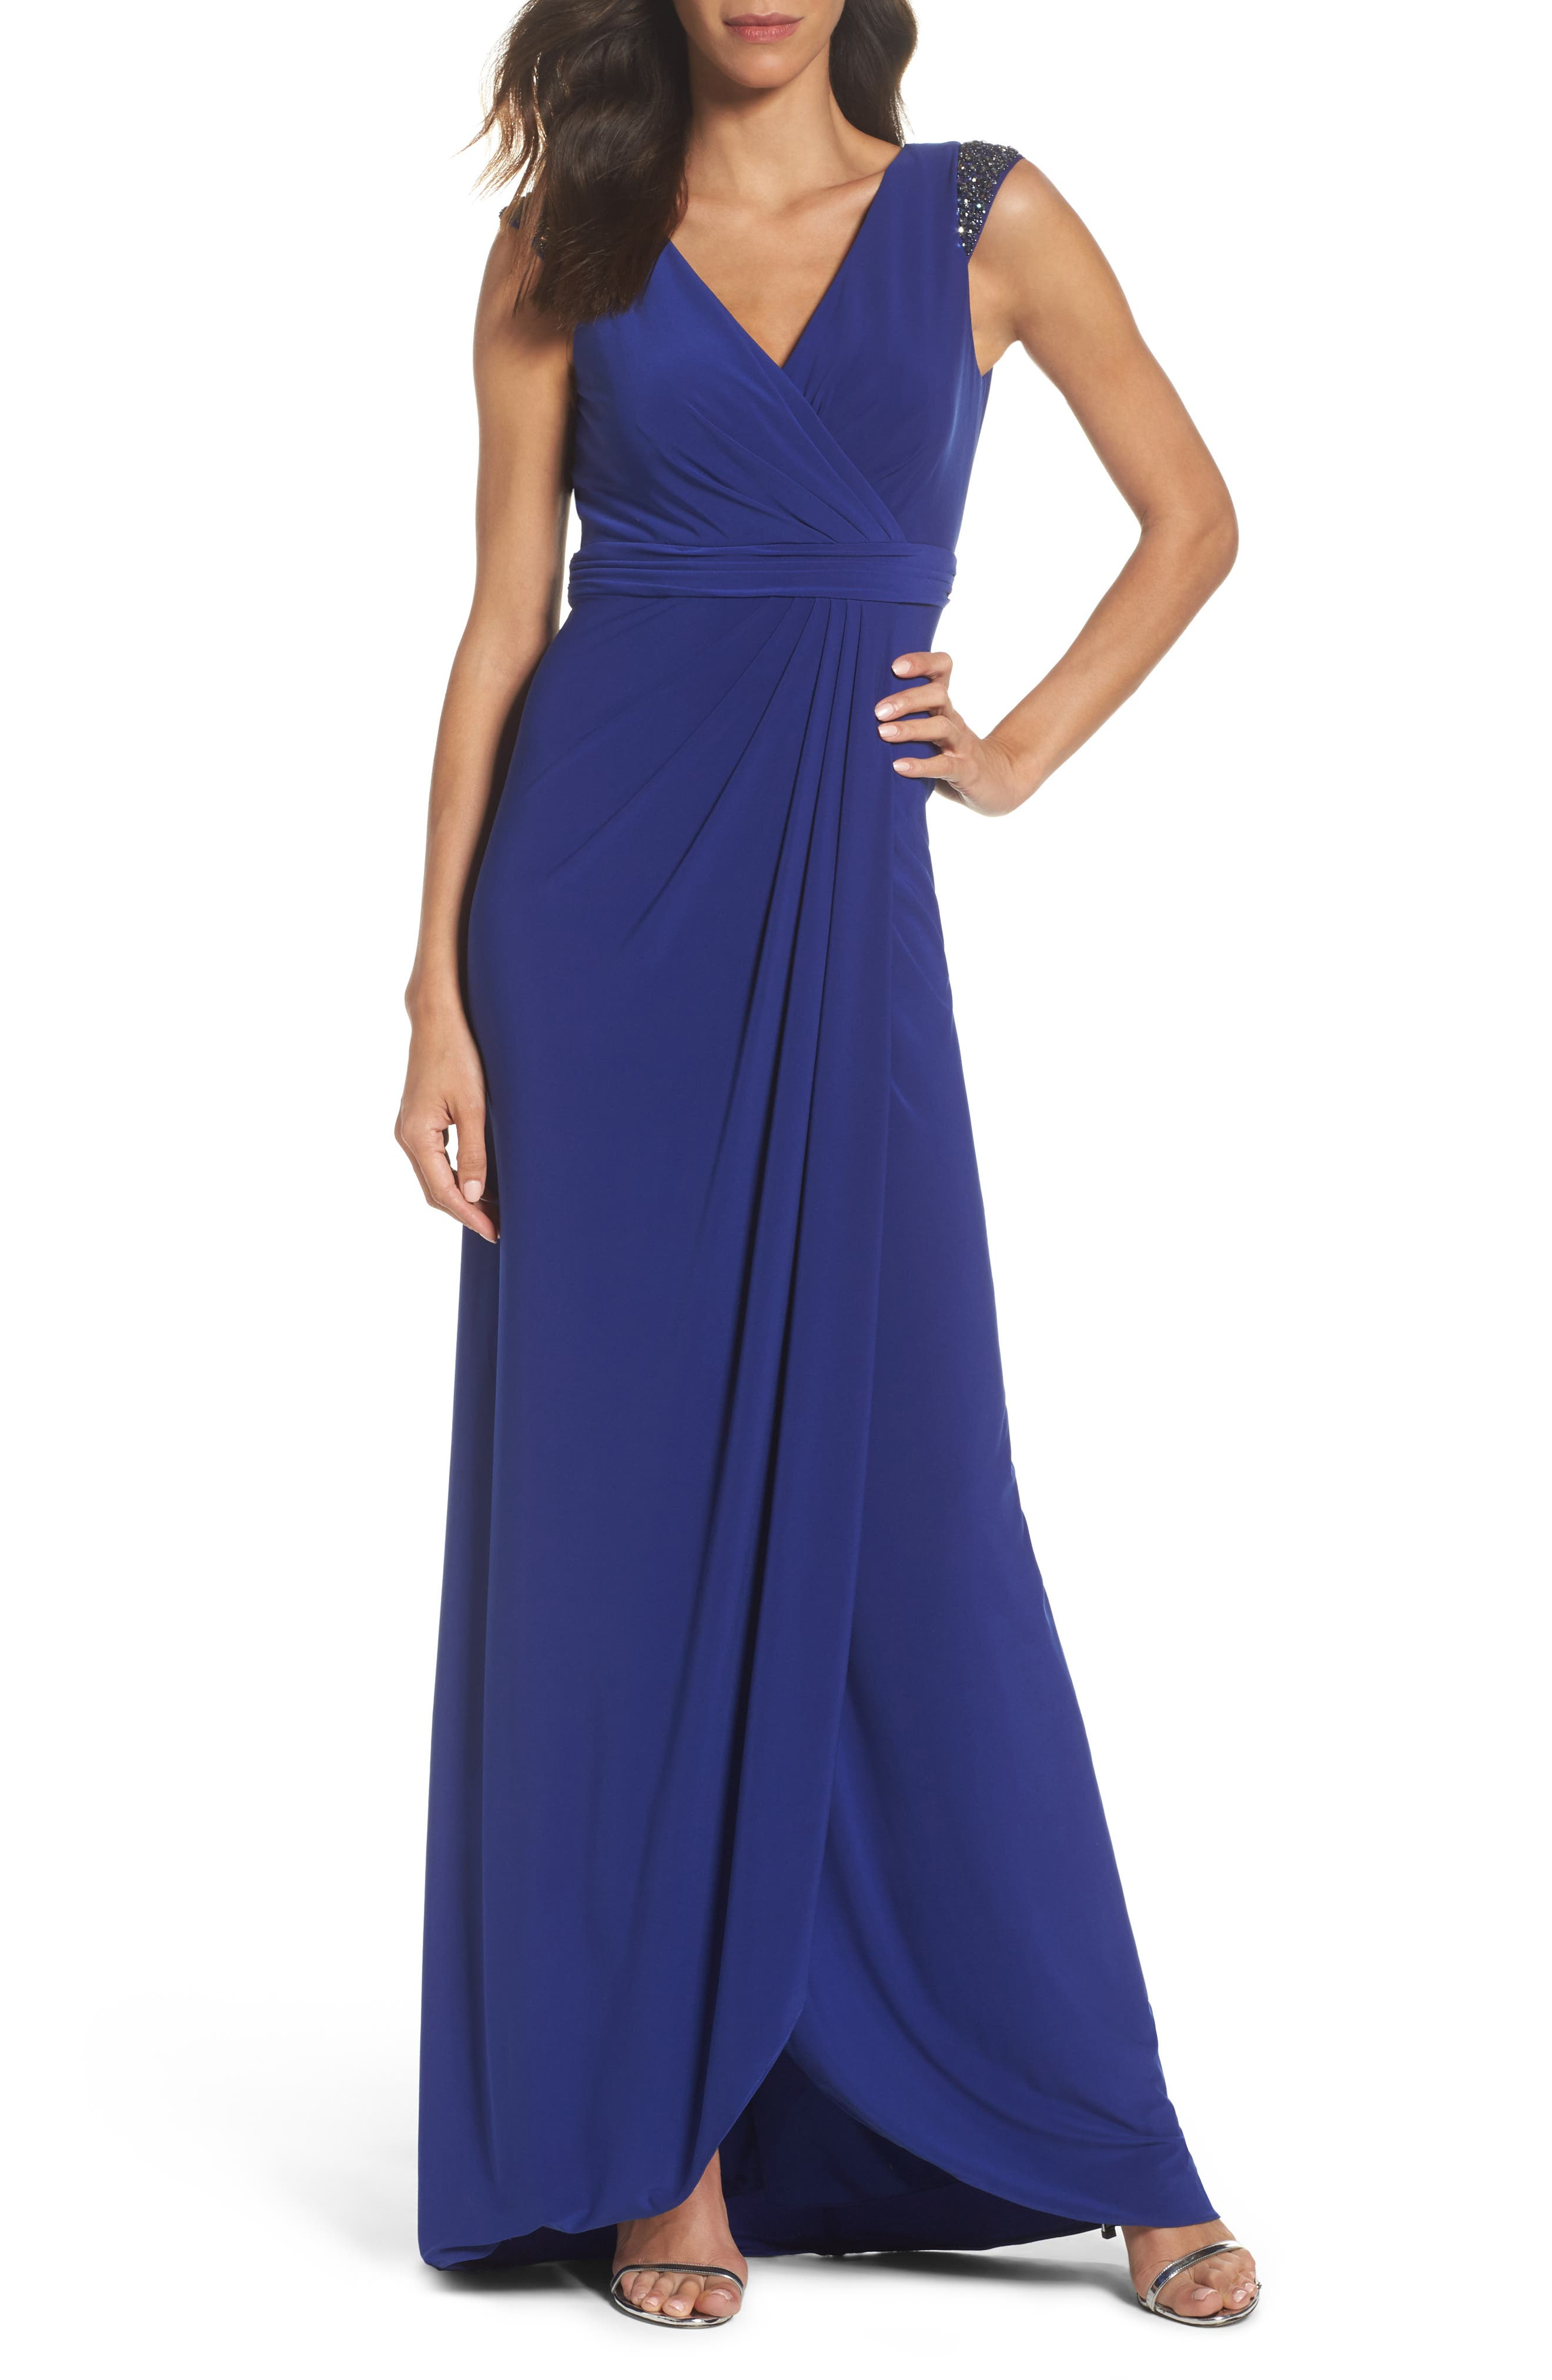 Alternate Image 1 Selected - Adrianna Papell Jersey Gown